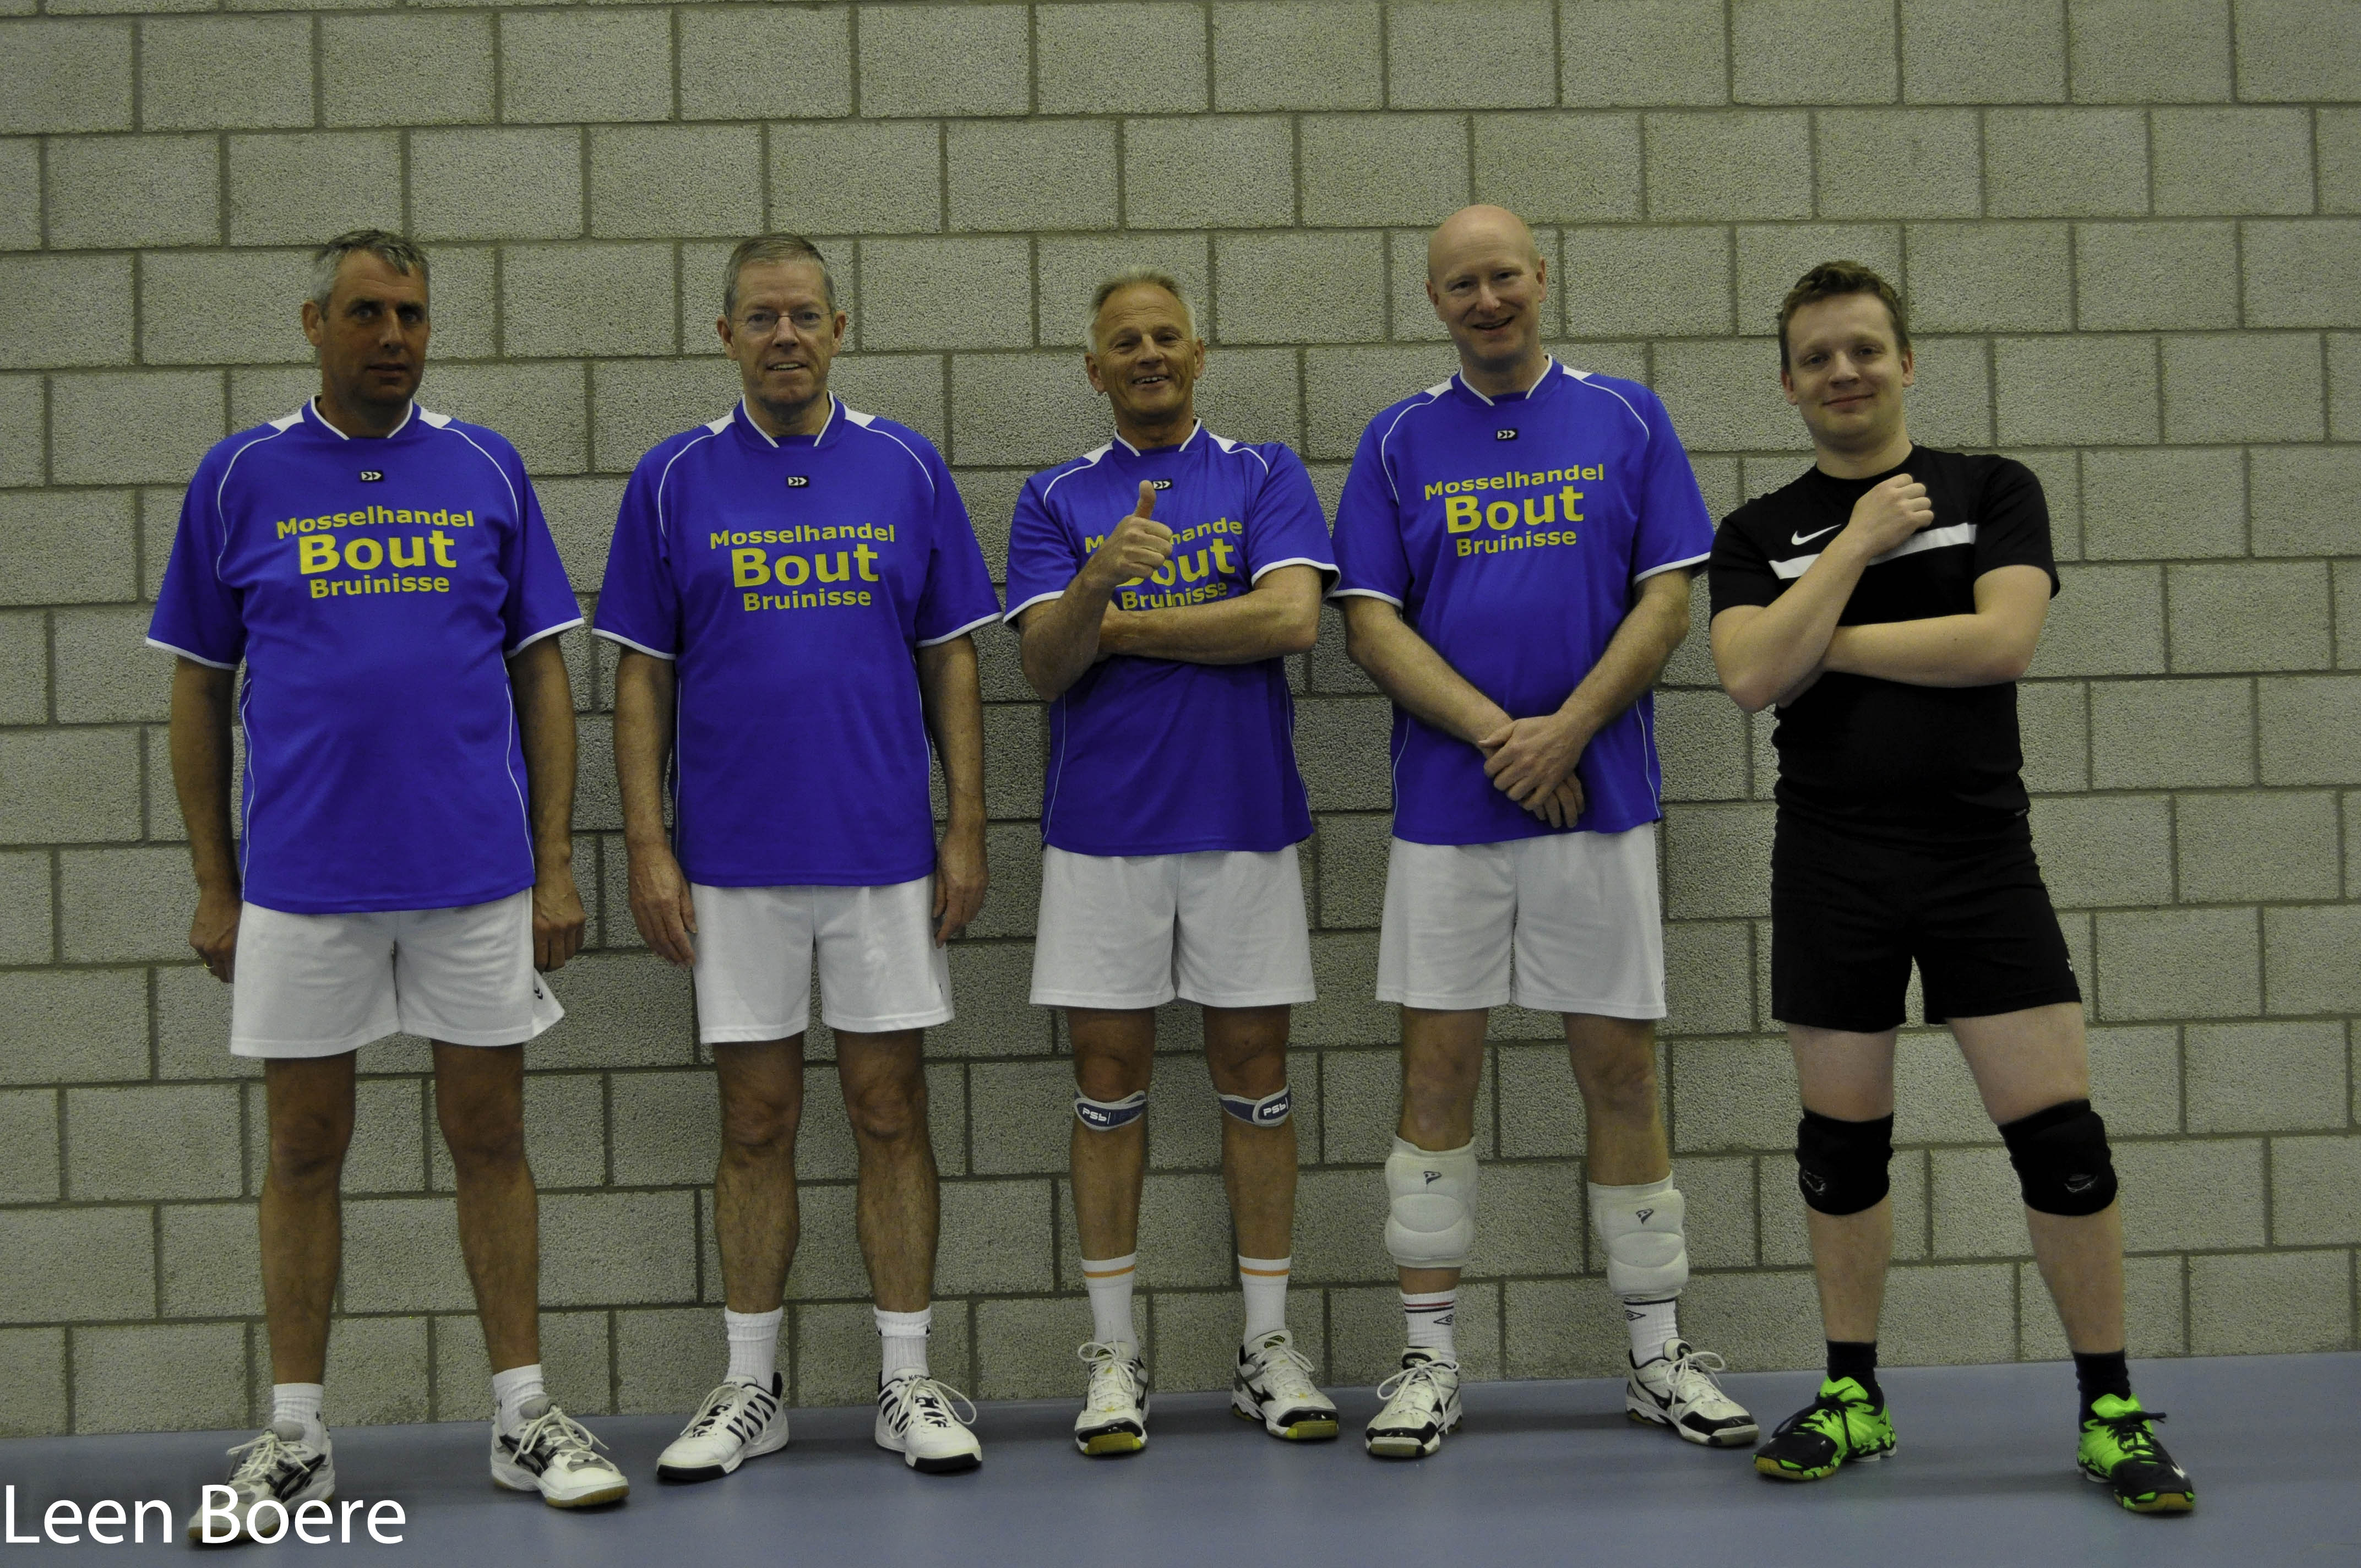 Mosselhandel Bout forza volleybal